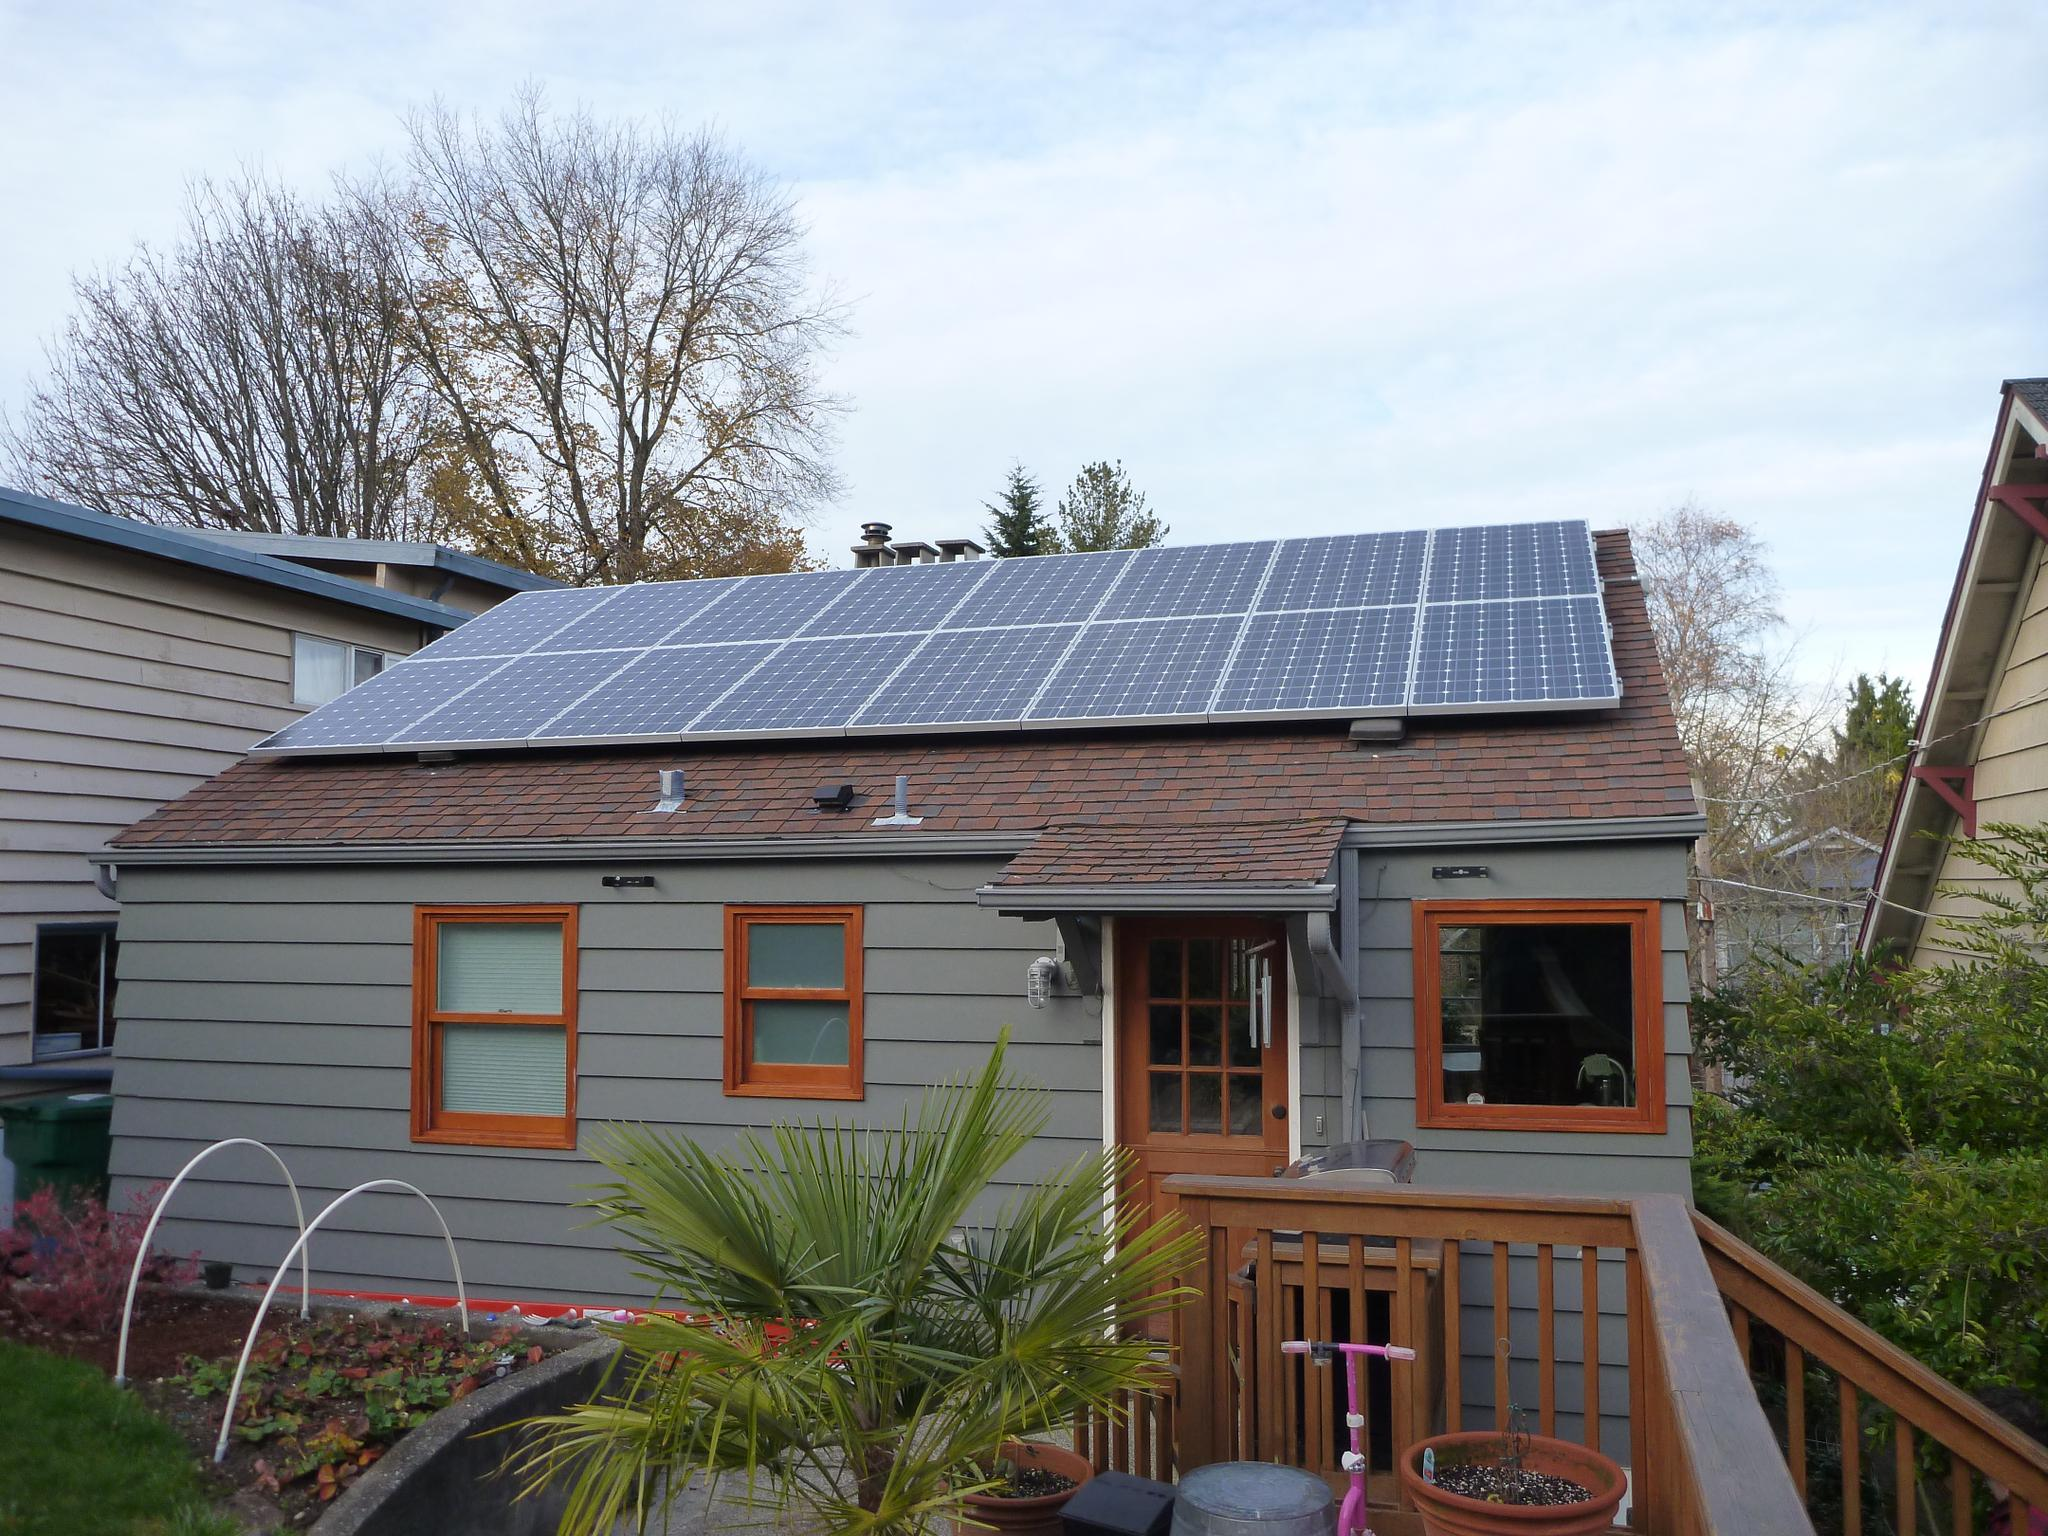 A Amp R Solar Profile And Reviews 2019 Energysage